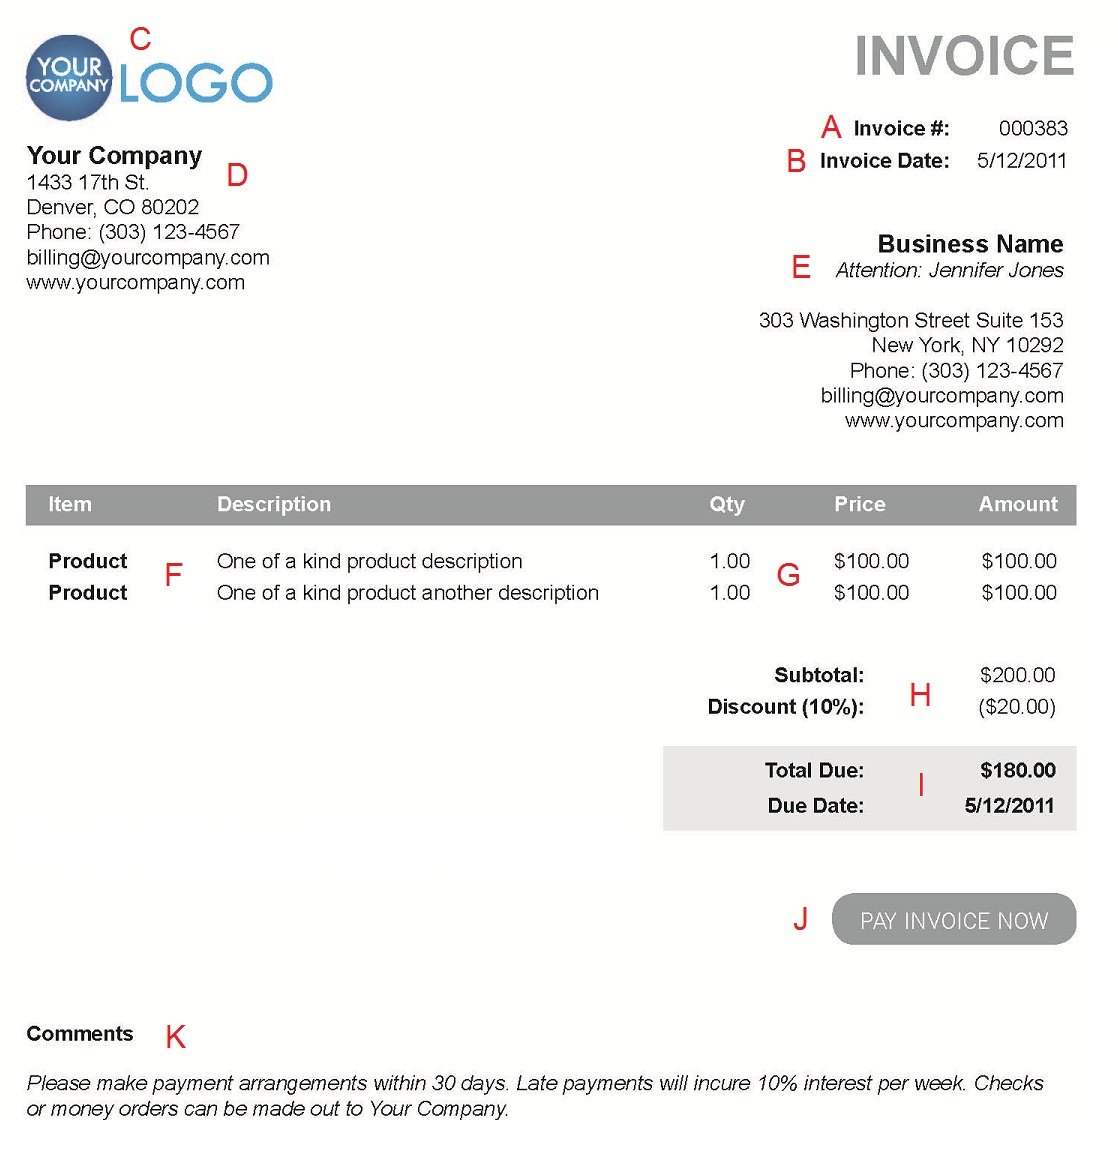 Ultrablogus  Stunning The  Different Sections Of An Electronic Payment Invoice With Remarkable A  With Attractive Sample Of Invoice For Payment Also Invoice Service Template In Addition Sample Invoice Format In Word And Invoicing System Software As Well As Tax Invoice Format In Excel Free Download Additionally Tax Invoice Statement Template From Paysimplecom With Ultrablogus  Remarkable The  Different Sections Of An Electronic Payment Invoice With Attractive A  And Stunning Sample Of Invoice For Payment Also Invoice Service Template In Addition Sample Invoice Format In Word From Paysimplecom